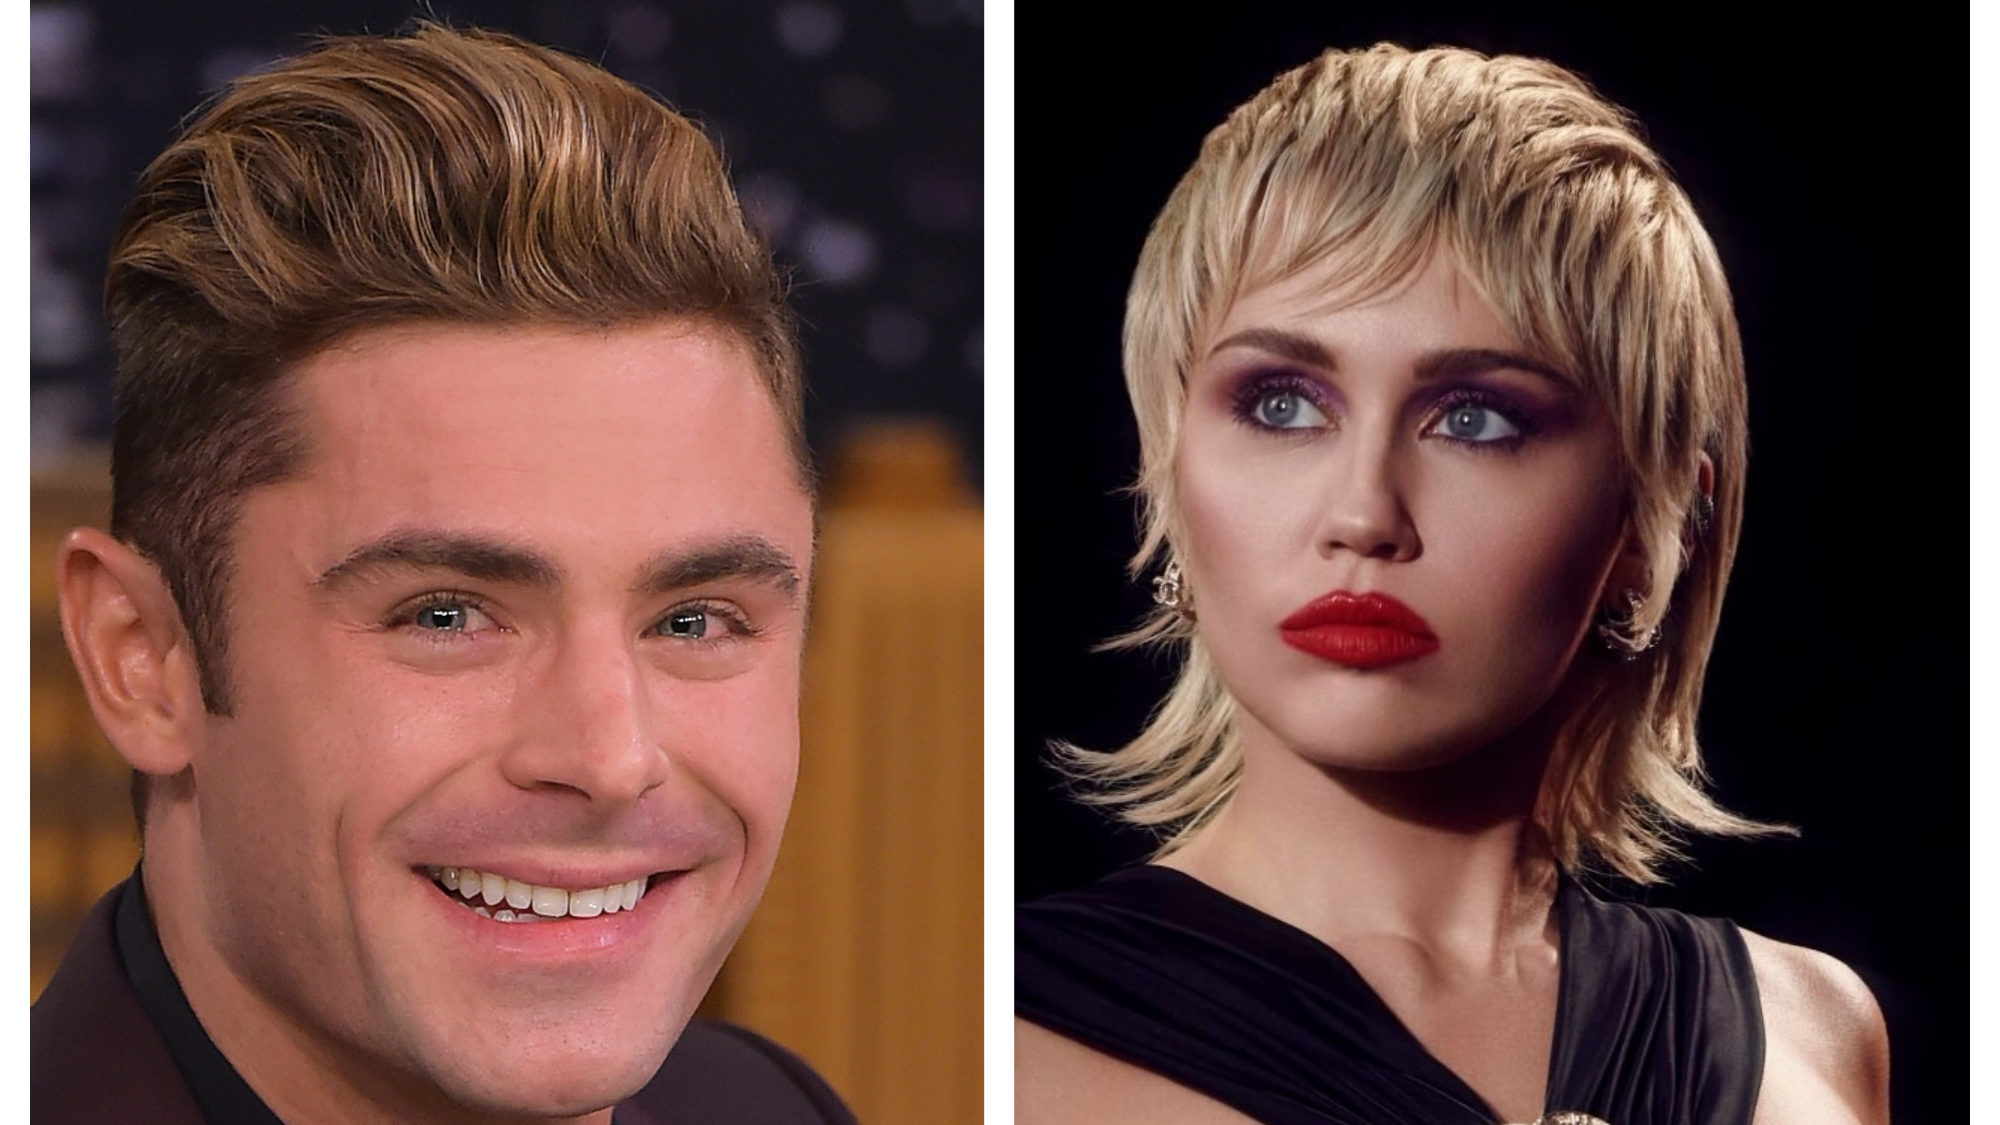 Miley Cyrus, Zac Efron Dating Rumors: Disney Stars looking for Relationship after being Single